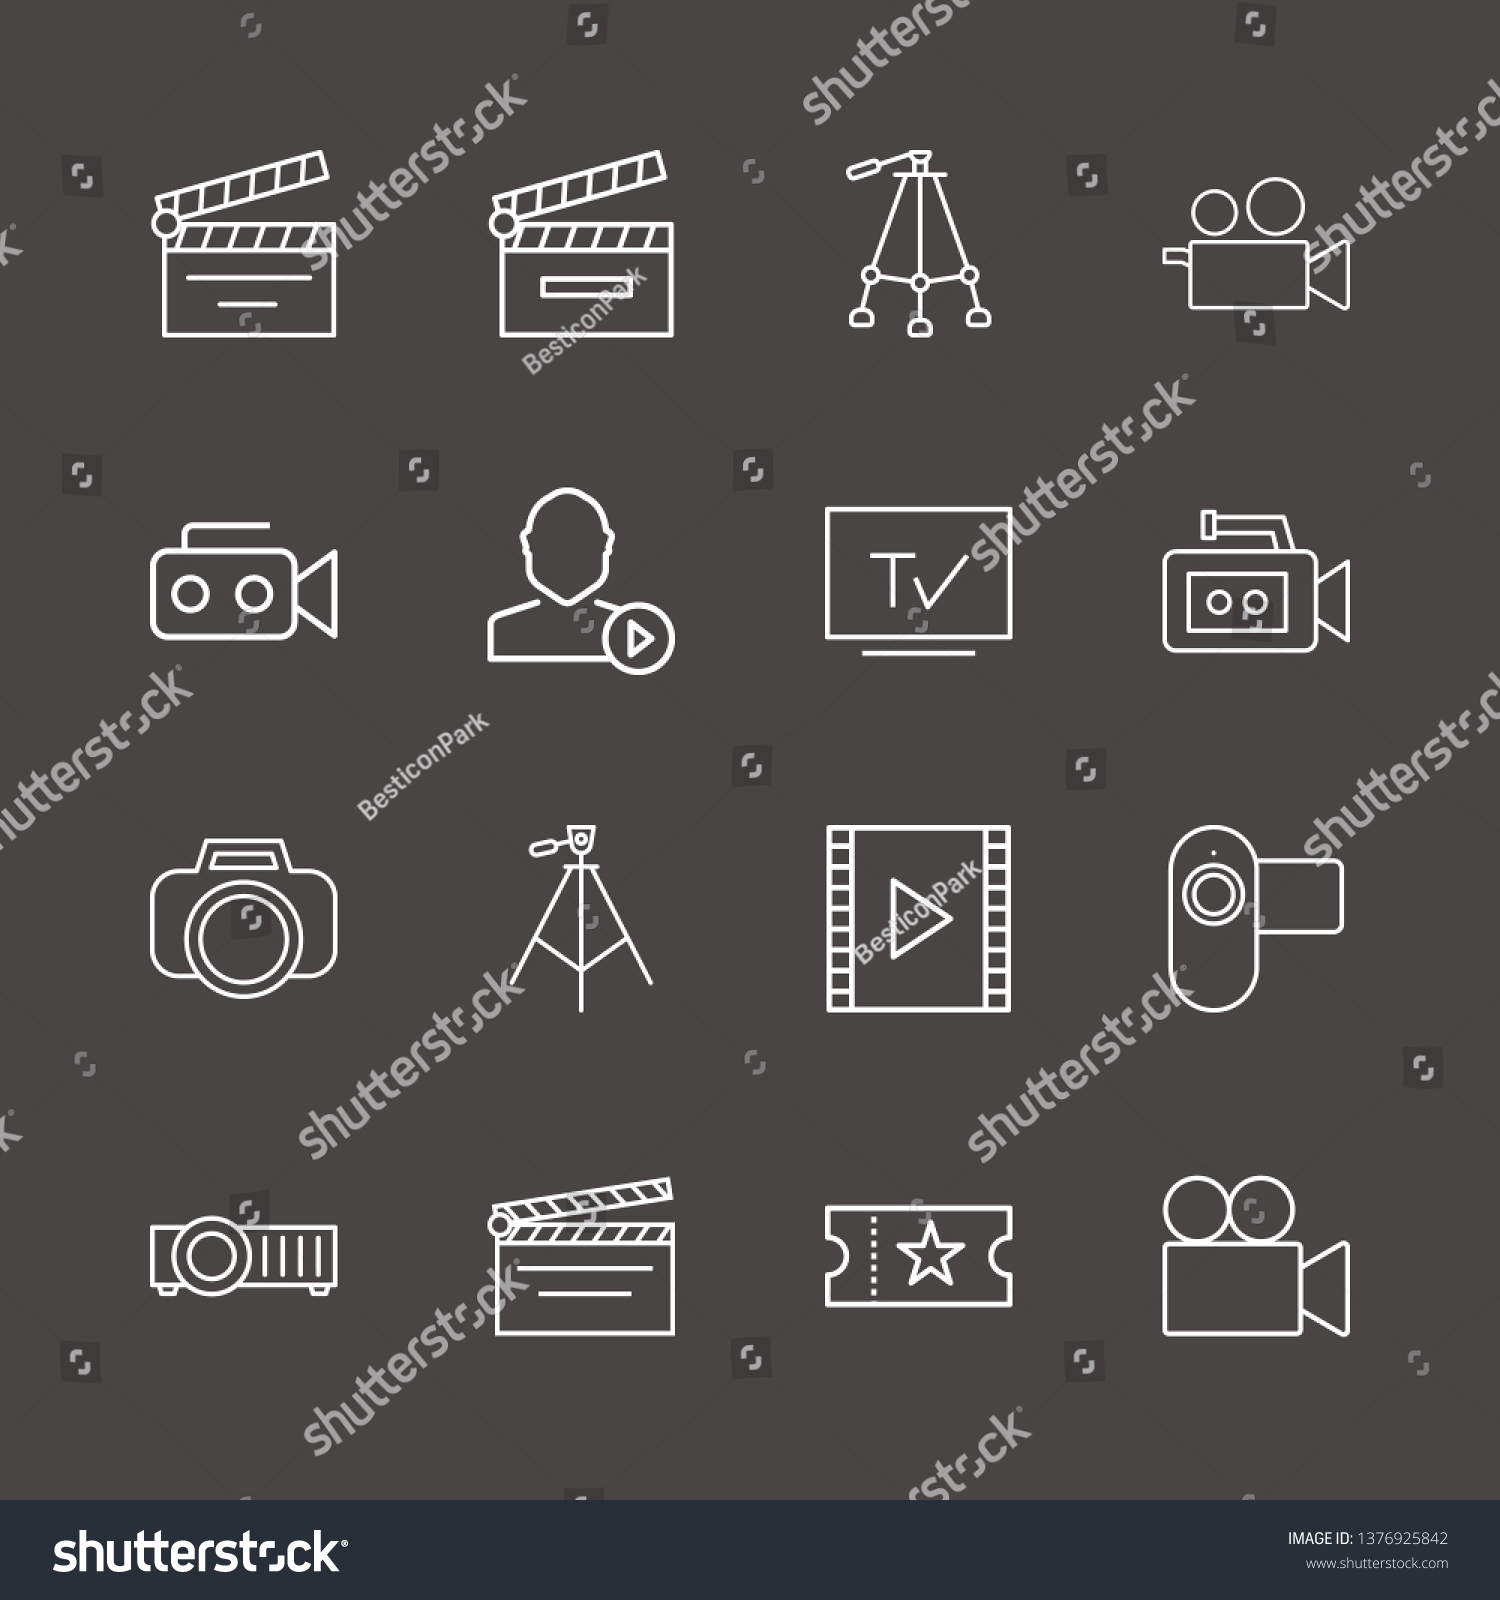 hight resolution of outline 16 film icon set film strip photo camera user mediaplayer and tripod vector illustration